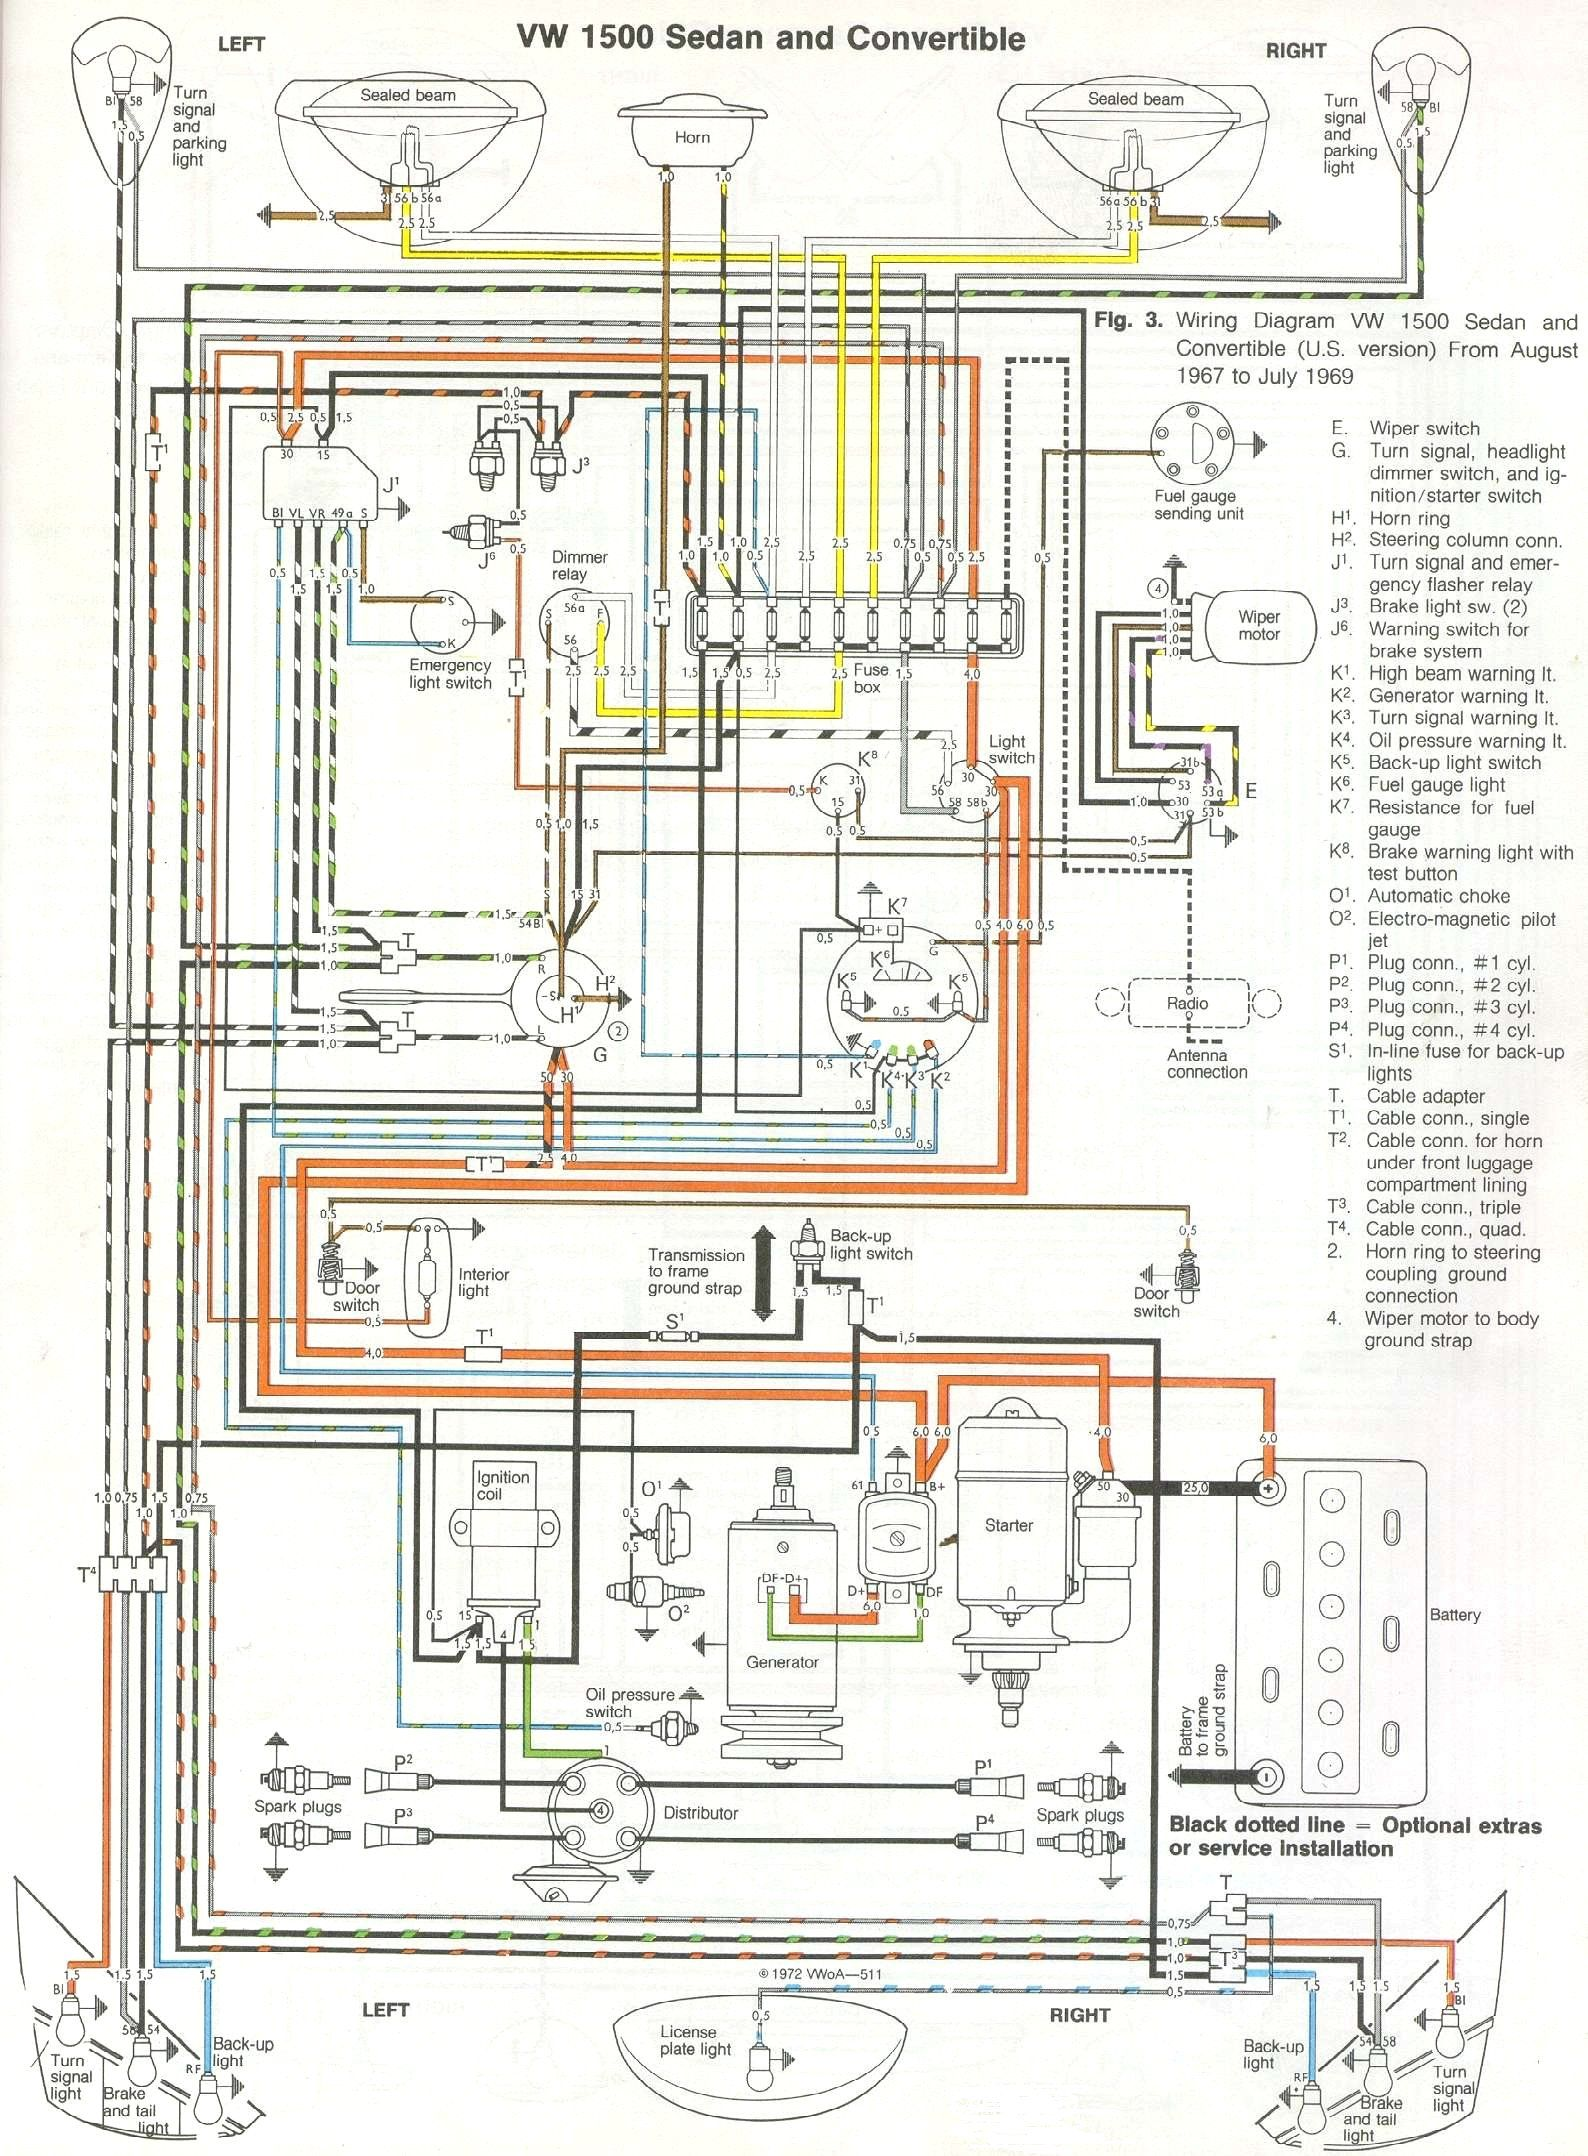 Miraculous 74 Vw Engine Diagram Wiring Library Wiring Cloud Hisonuggs Outletorg